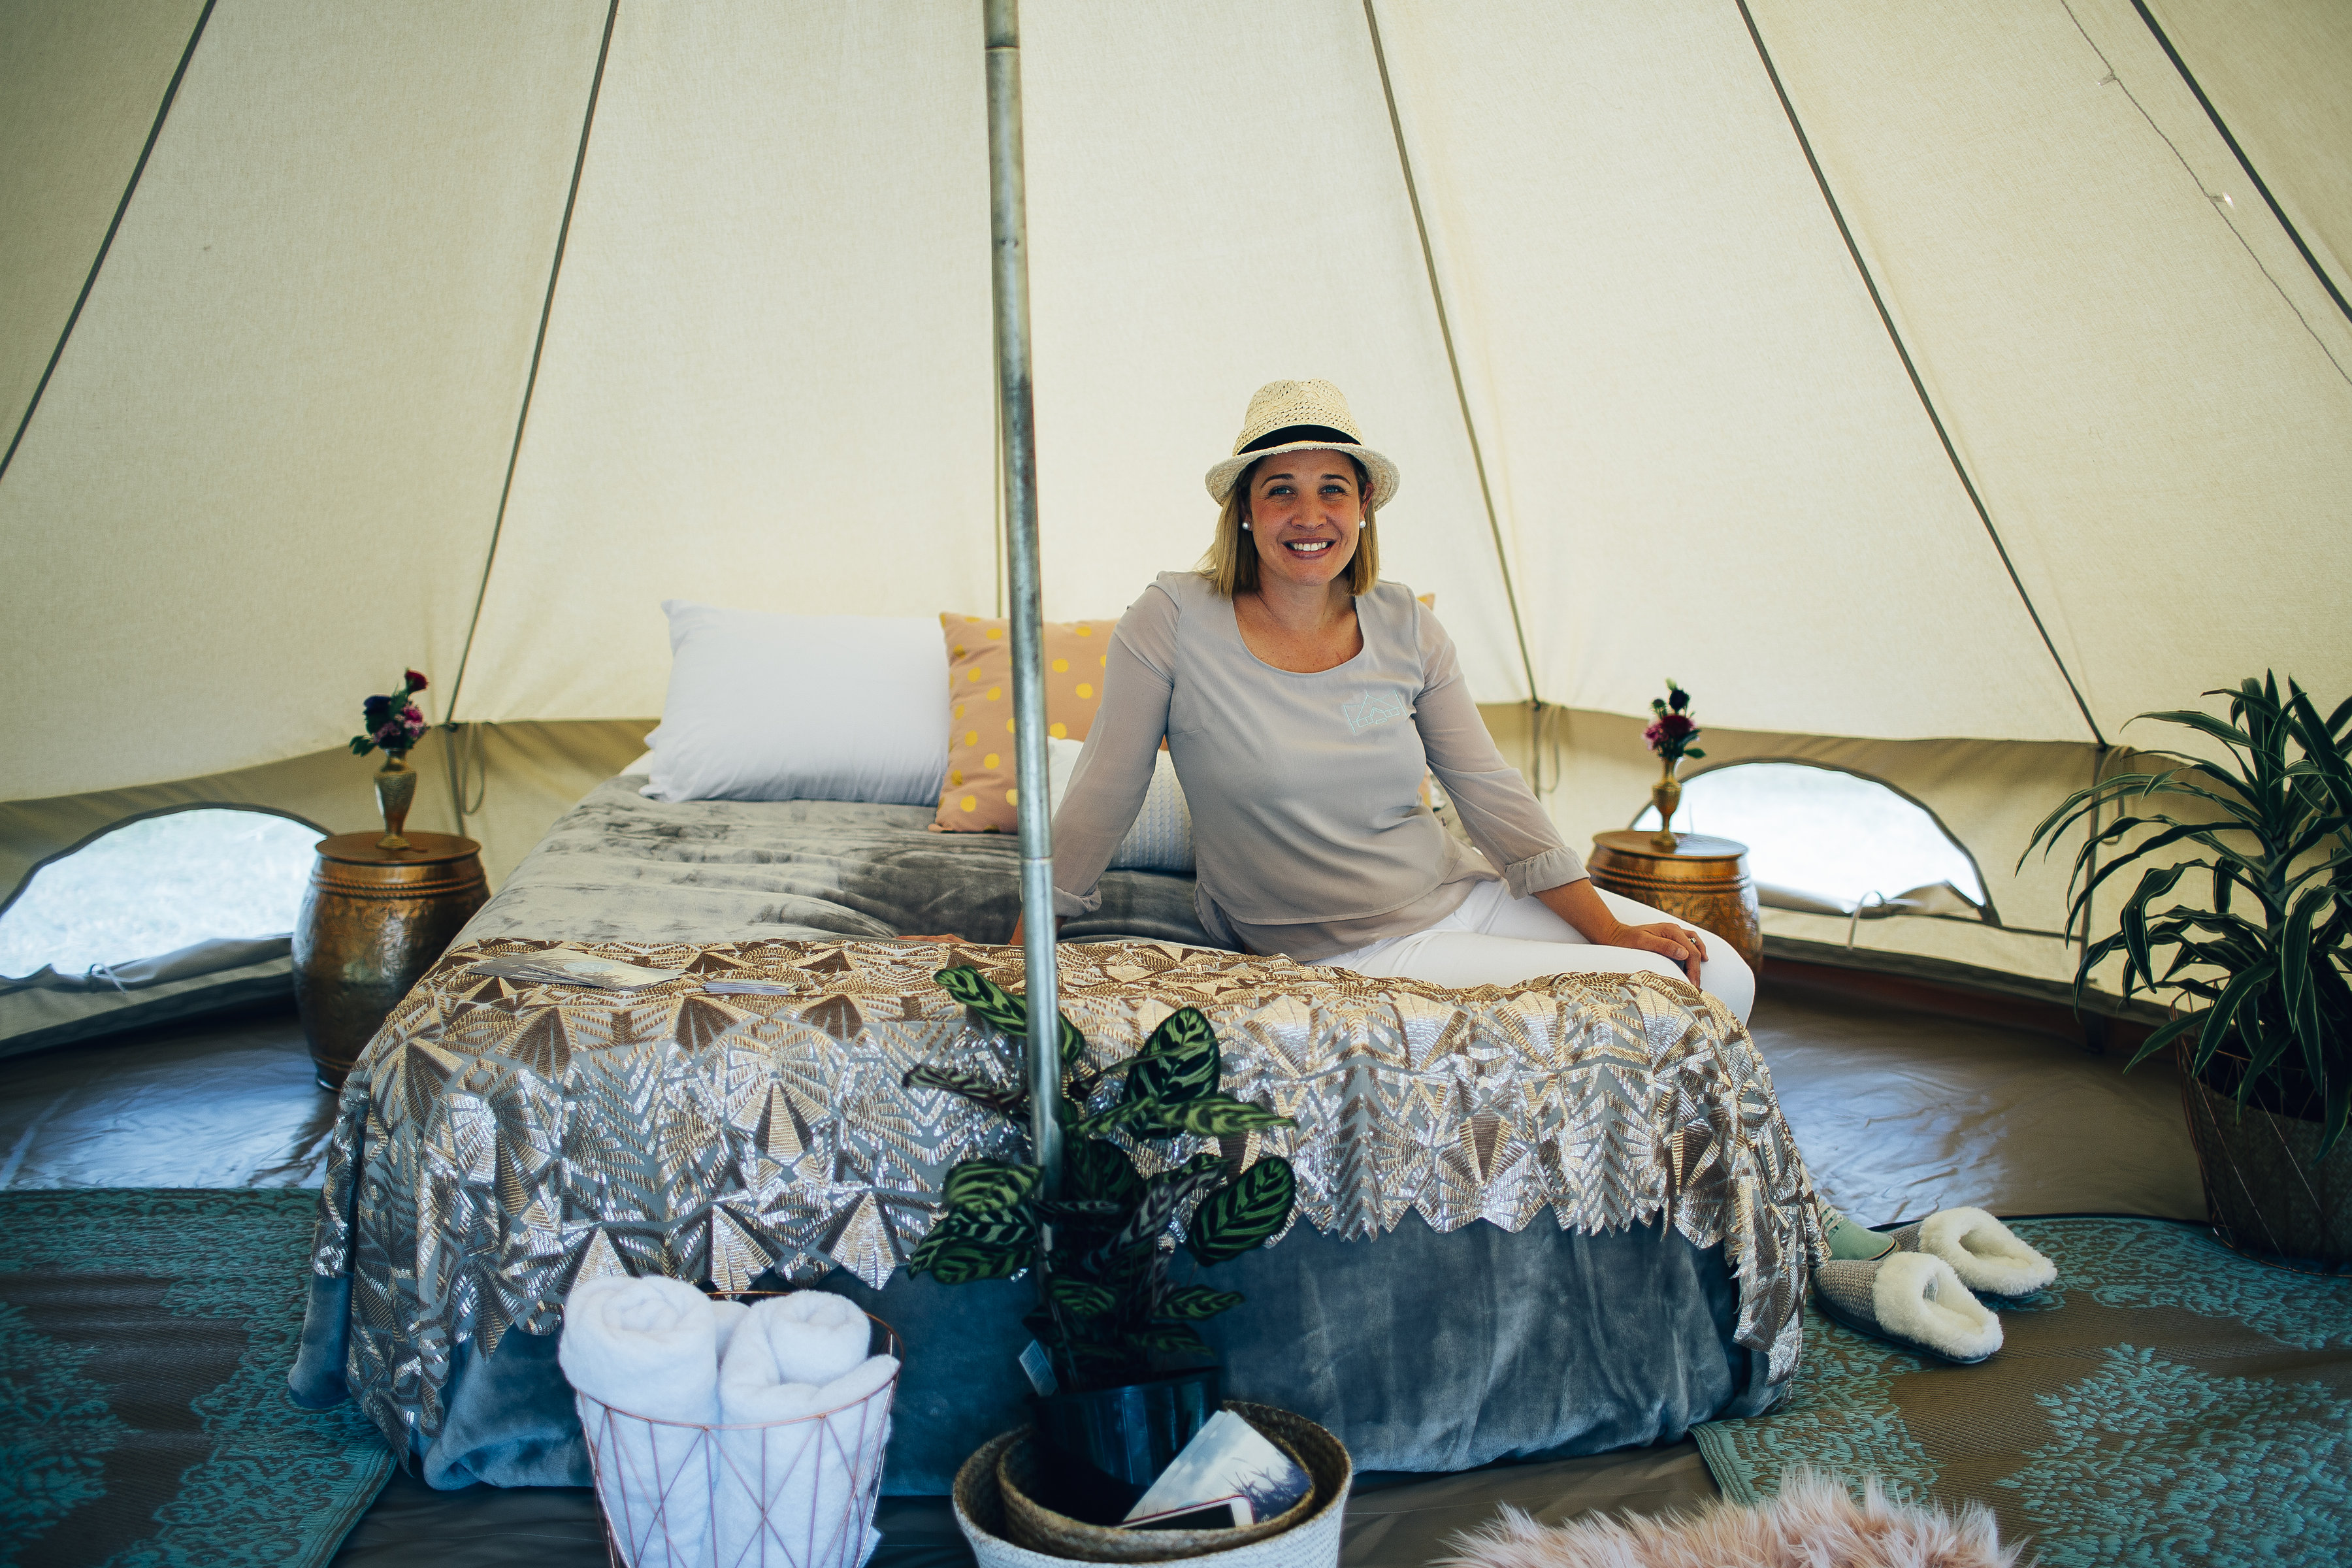 Fiona Alexander is the Founder of glamorous camping experiences at Glamping Days Hire Co